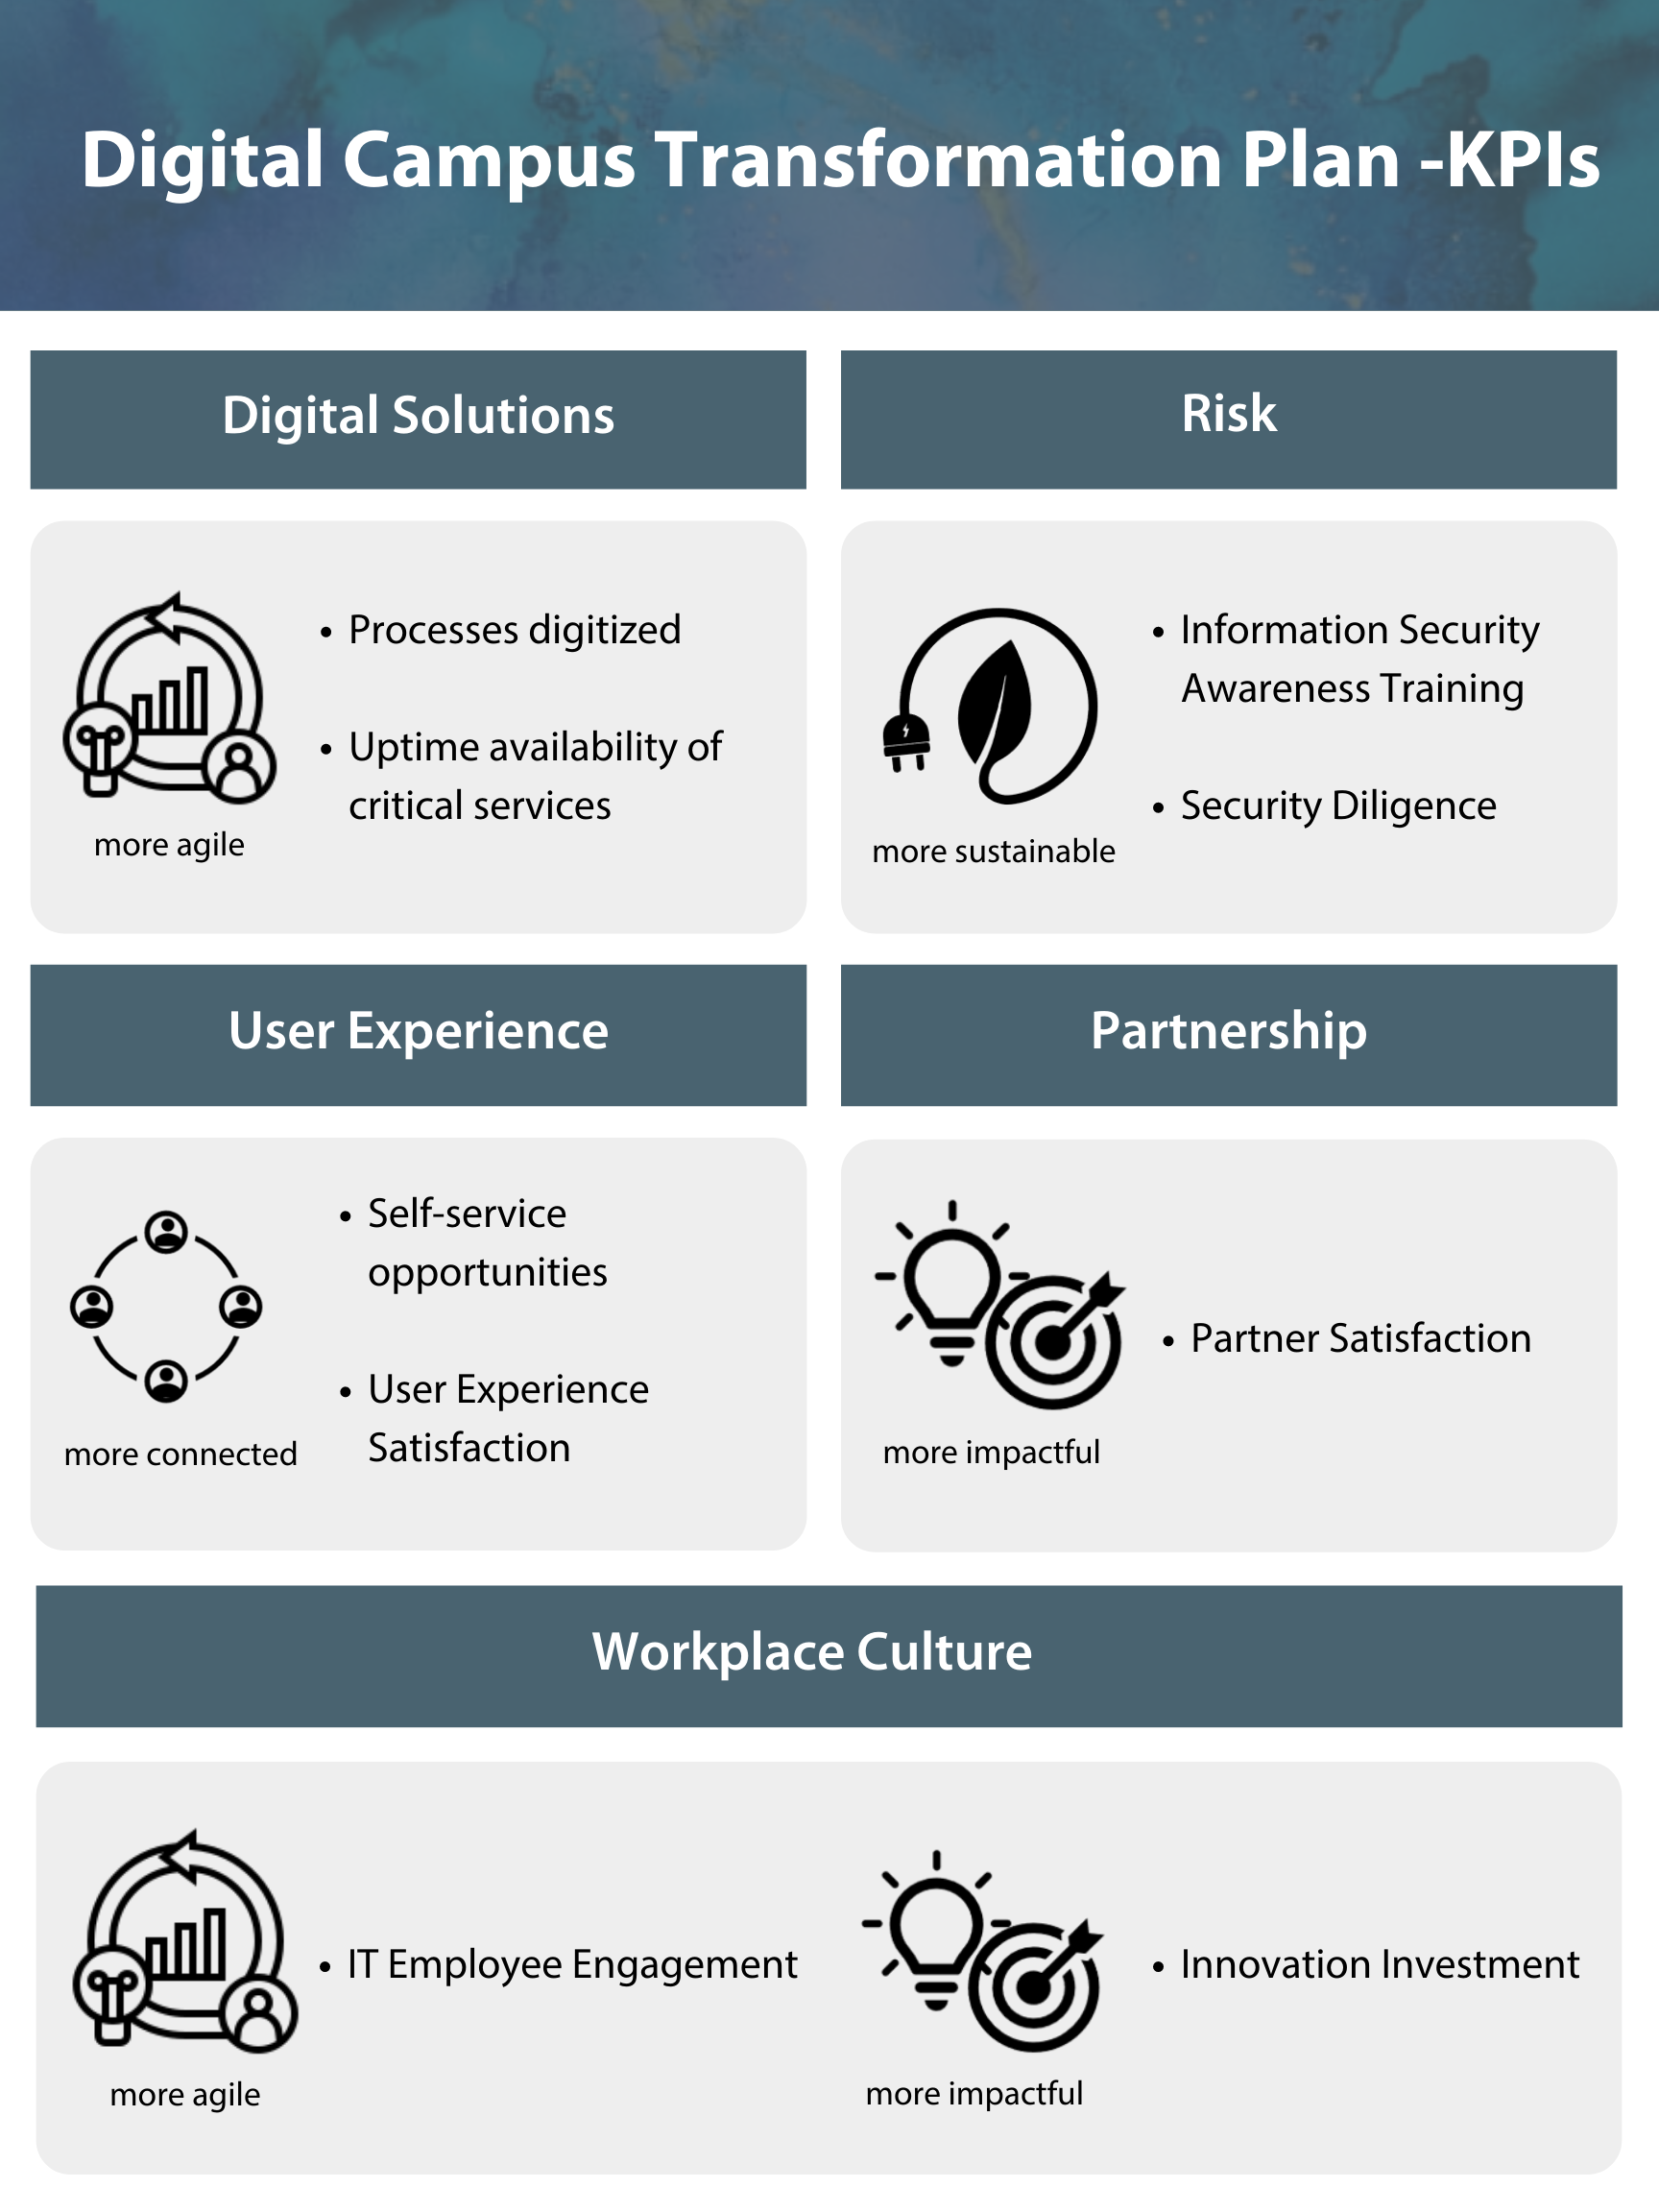 digital solutions, risks, user experience, partnership, partrner and user satisfaction, workplace culture, IT employee engagement, and innovation investment.